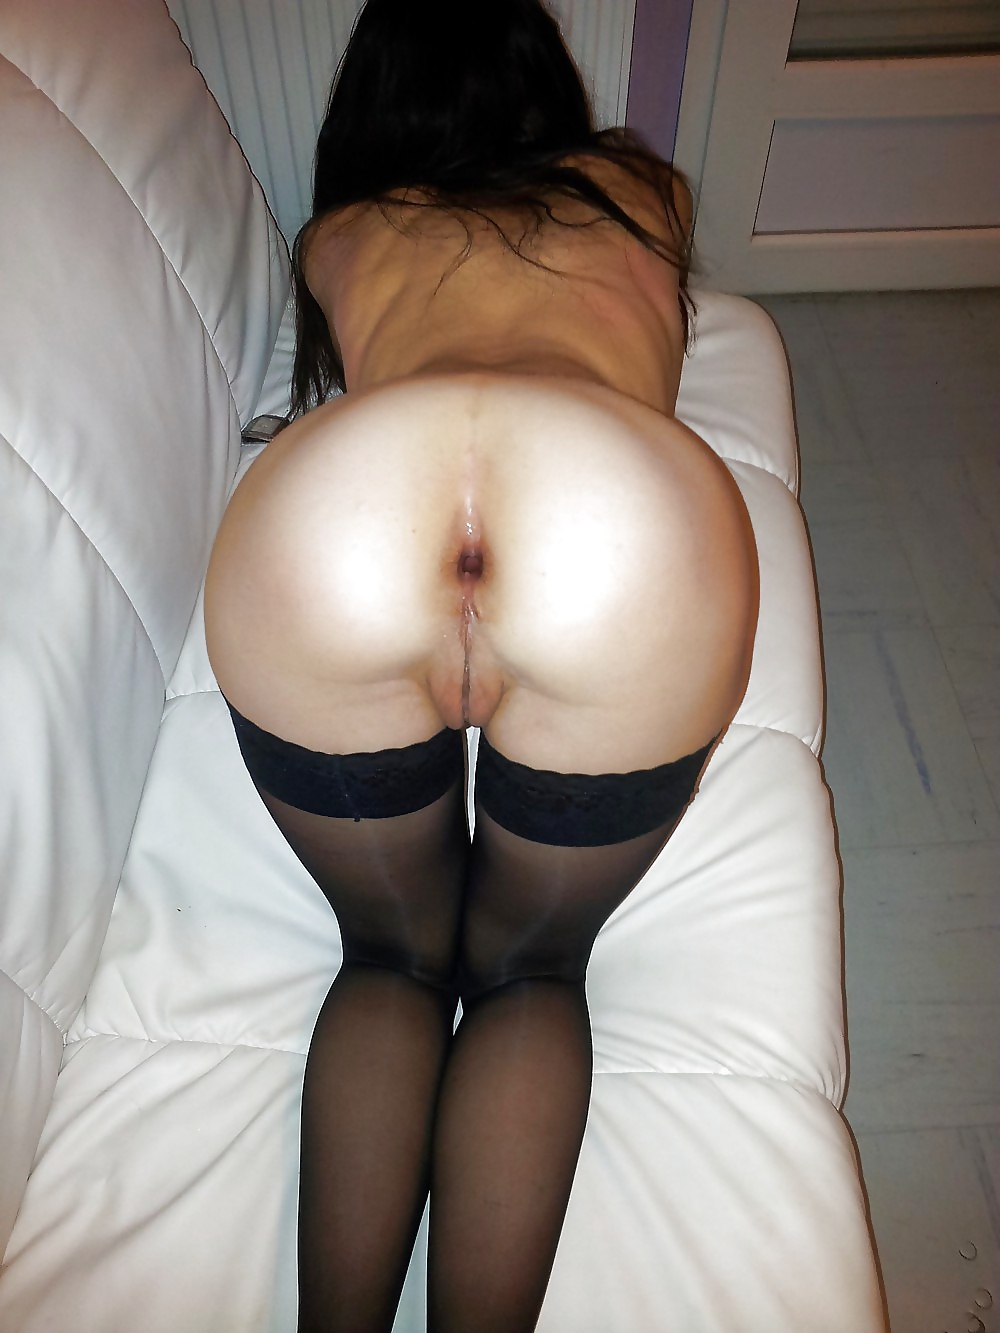 Amateur stockings naked ass — photo 4